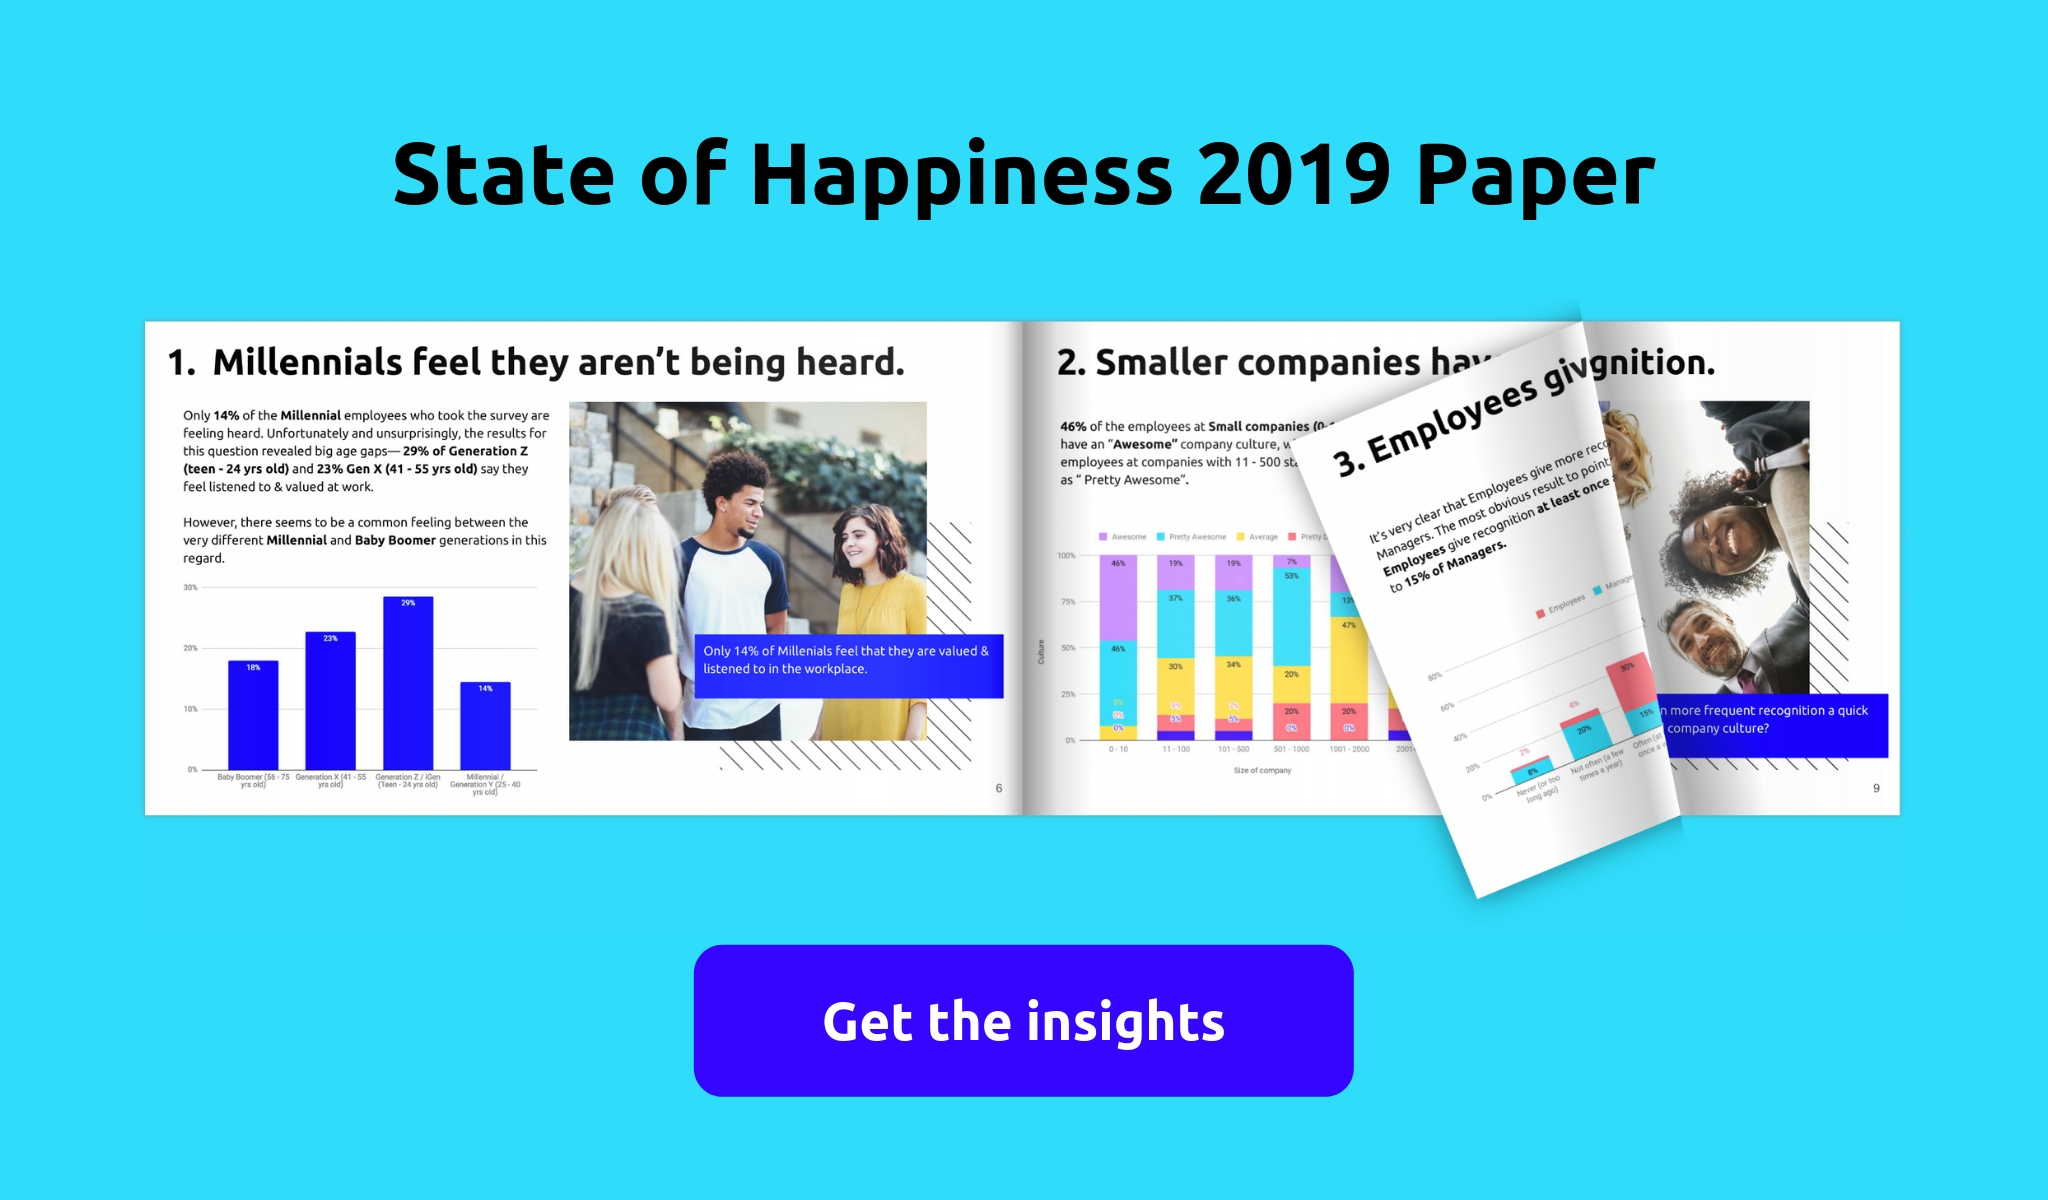 State of Happiness 2019